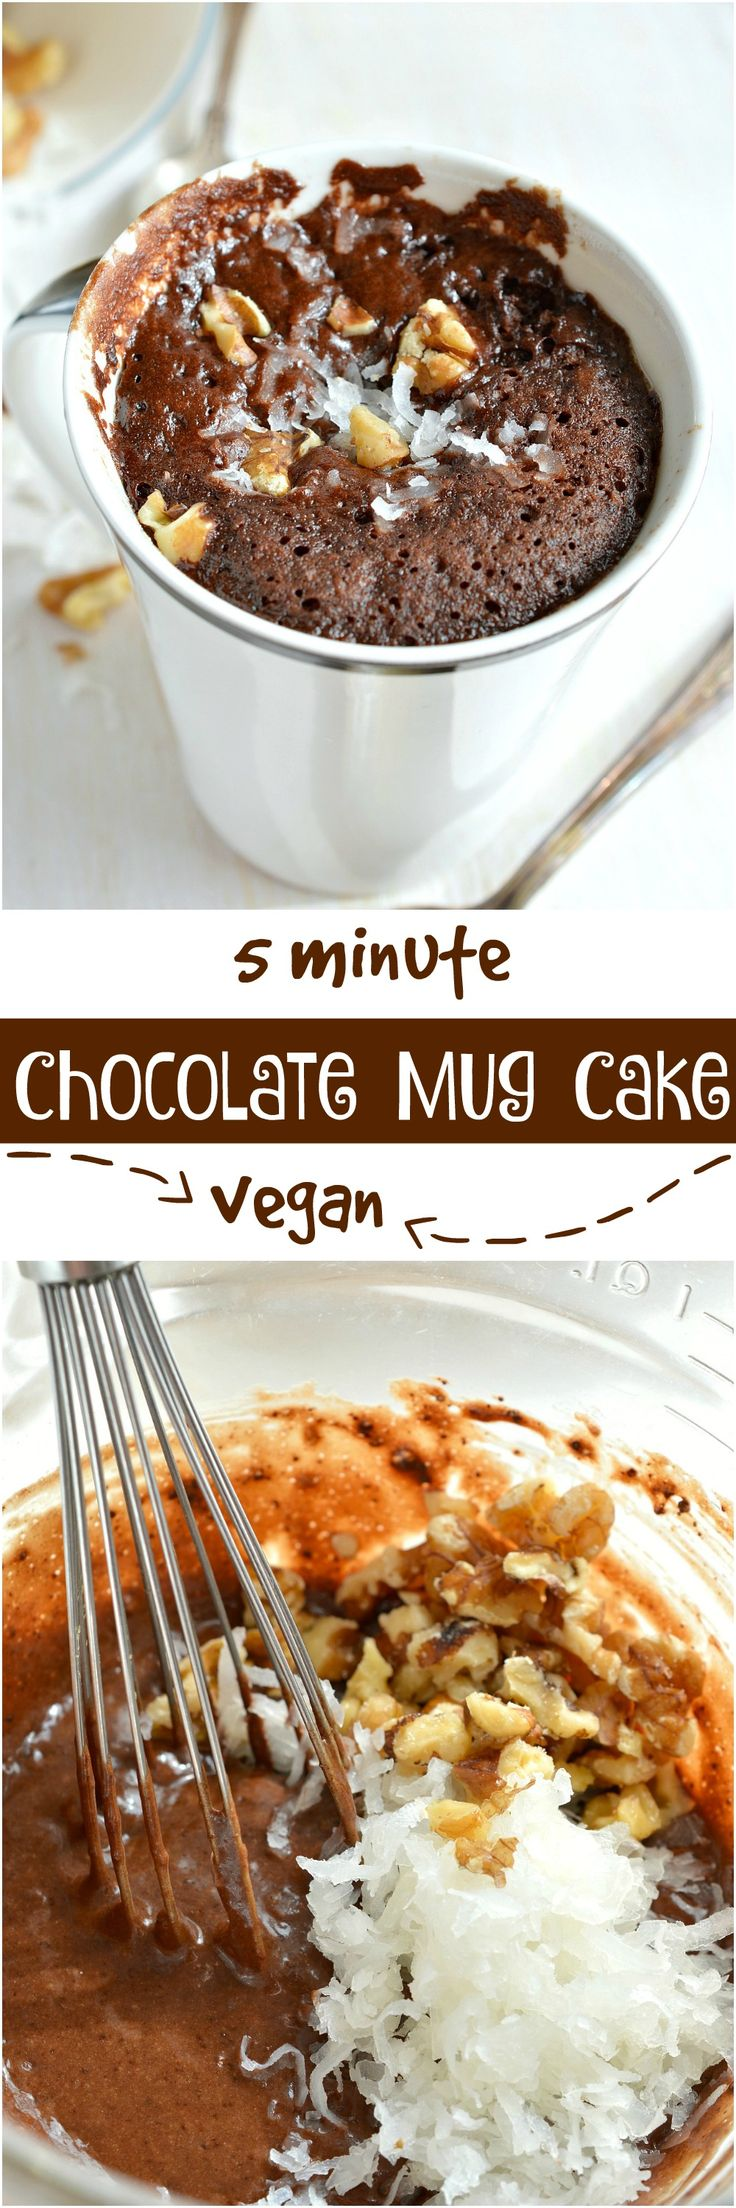 Craving chocolate and need a quick dessert fix? This Egg-Free, Dairy-Free German Chocolate Mug Cake Recipe is the solution! You read that right. No eggs. No dairy. And this vegan chocolate cake is made in 5 minutes! #ad #nutchello @lovemysilk